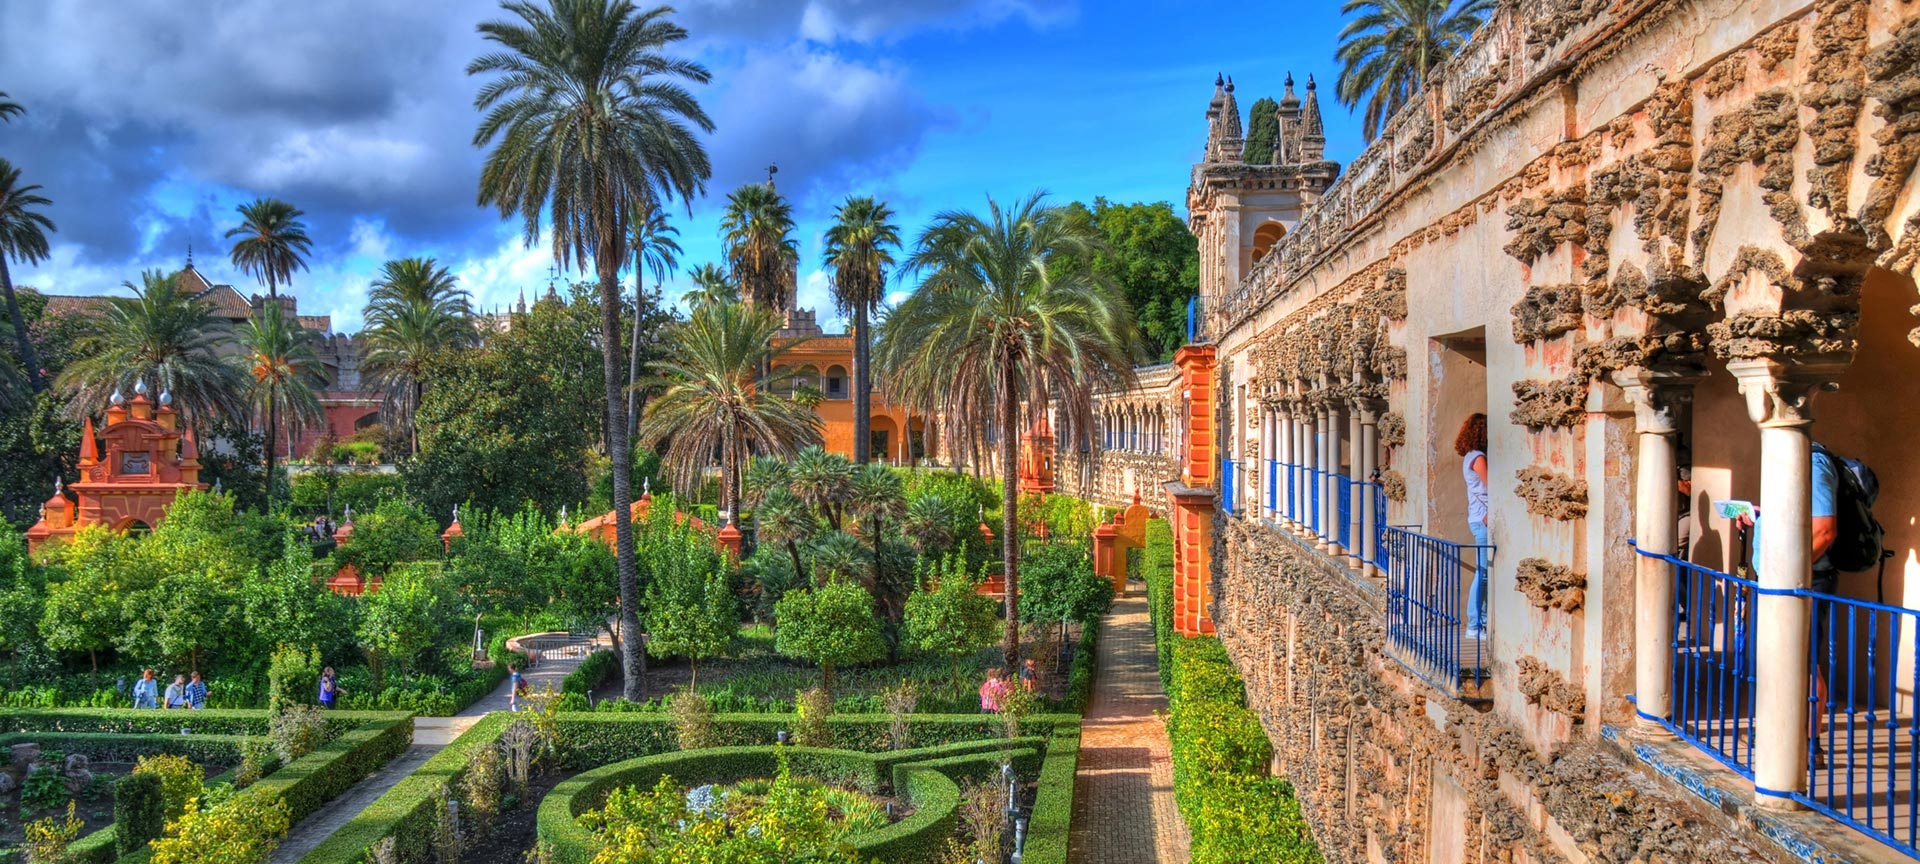 The Alcázar of Seville began its life as a fortified Moorish palace. Today, the palace is still a royal residence and is often used as a film set. It has been used in Hollywood movies 'Lawrence of Arabia', 'Knight and Day' and Ridley Scott's '1492: Conquest of Paradise' and was also used in Game of Thrones.